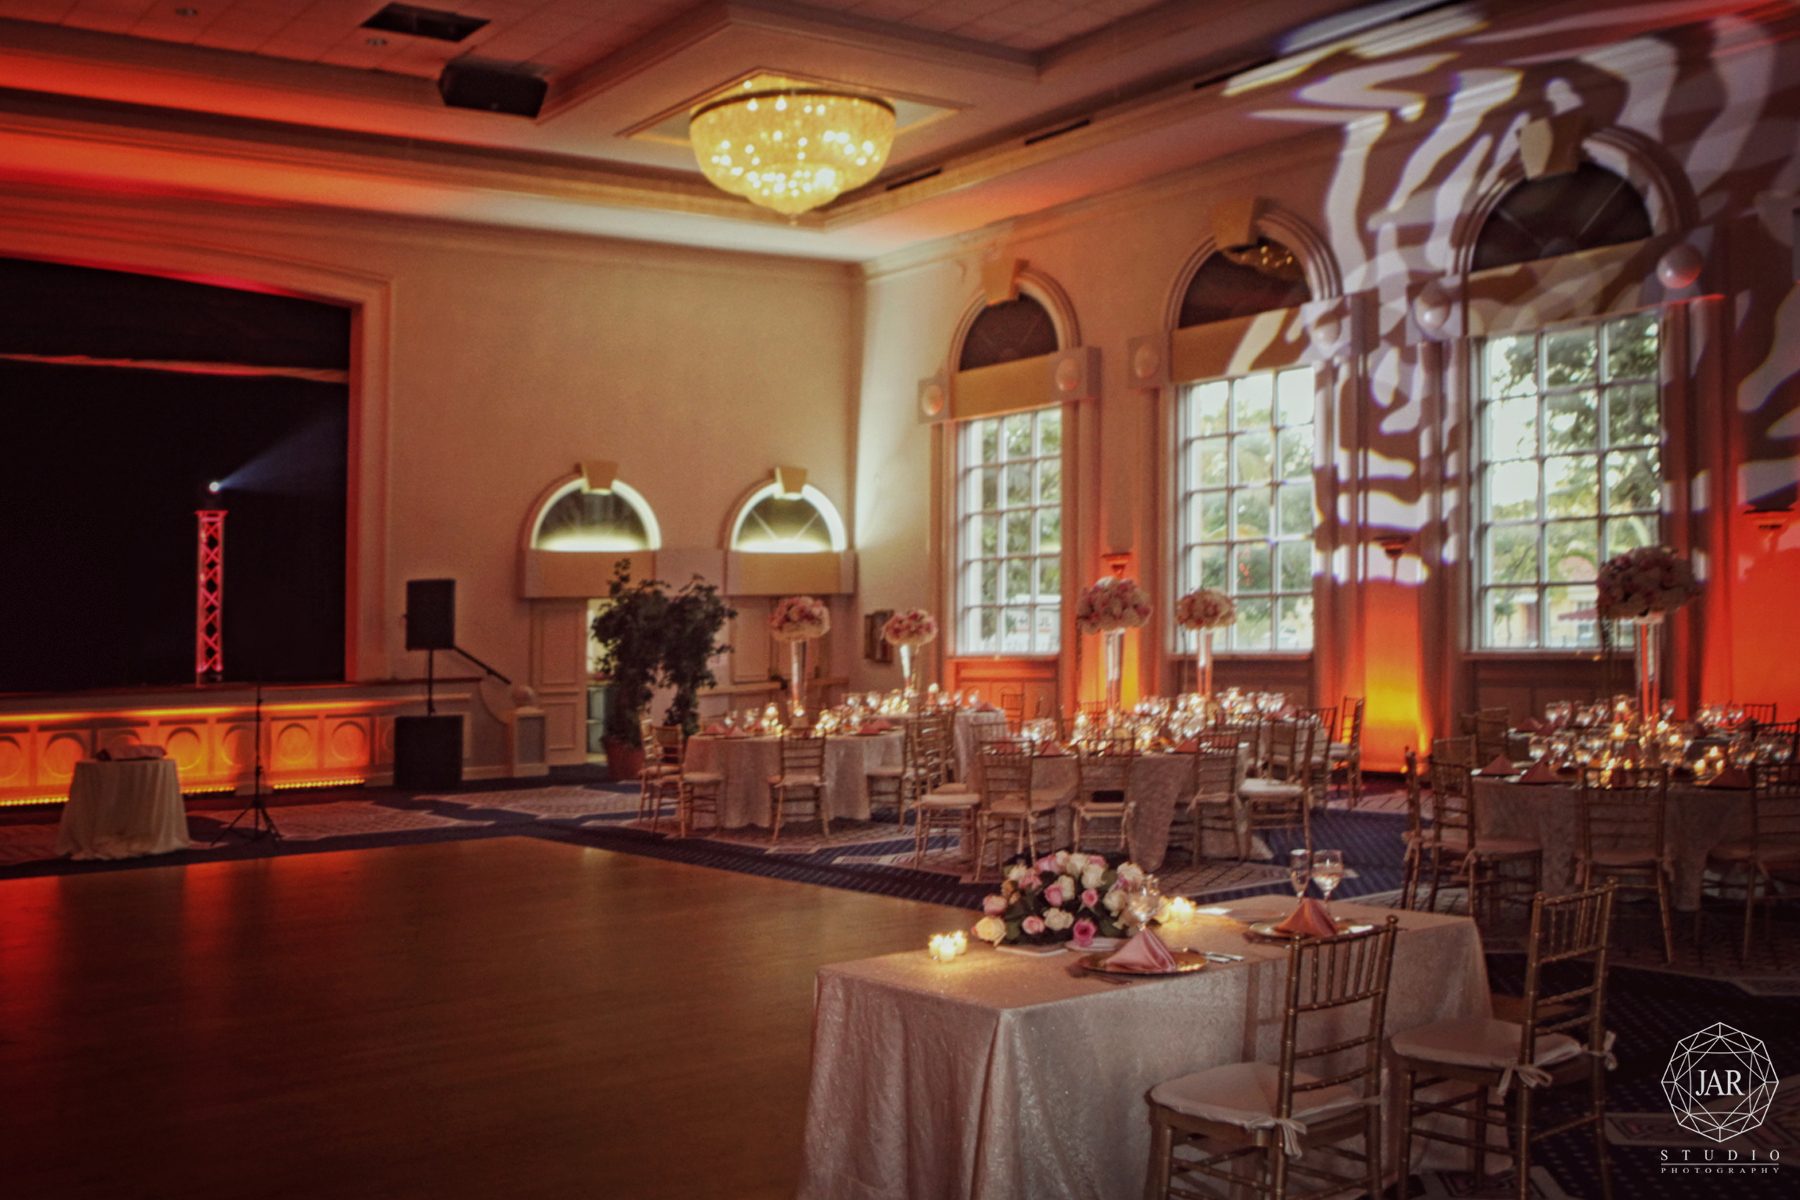 31-jewish-wedding-ballroom-jarstudio-photography-orlando.JPG